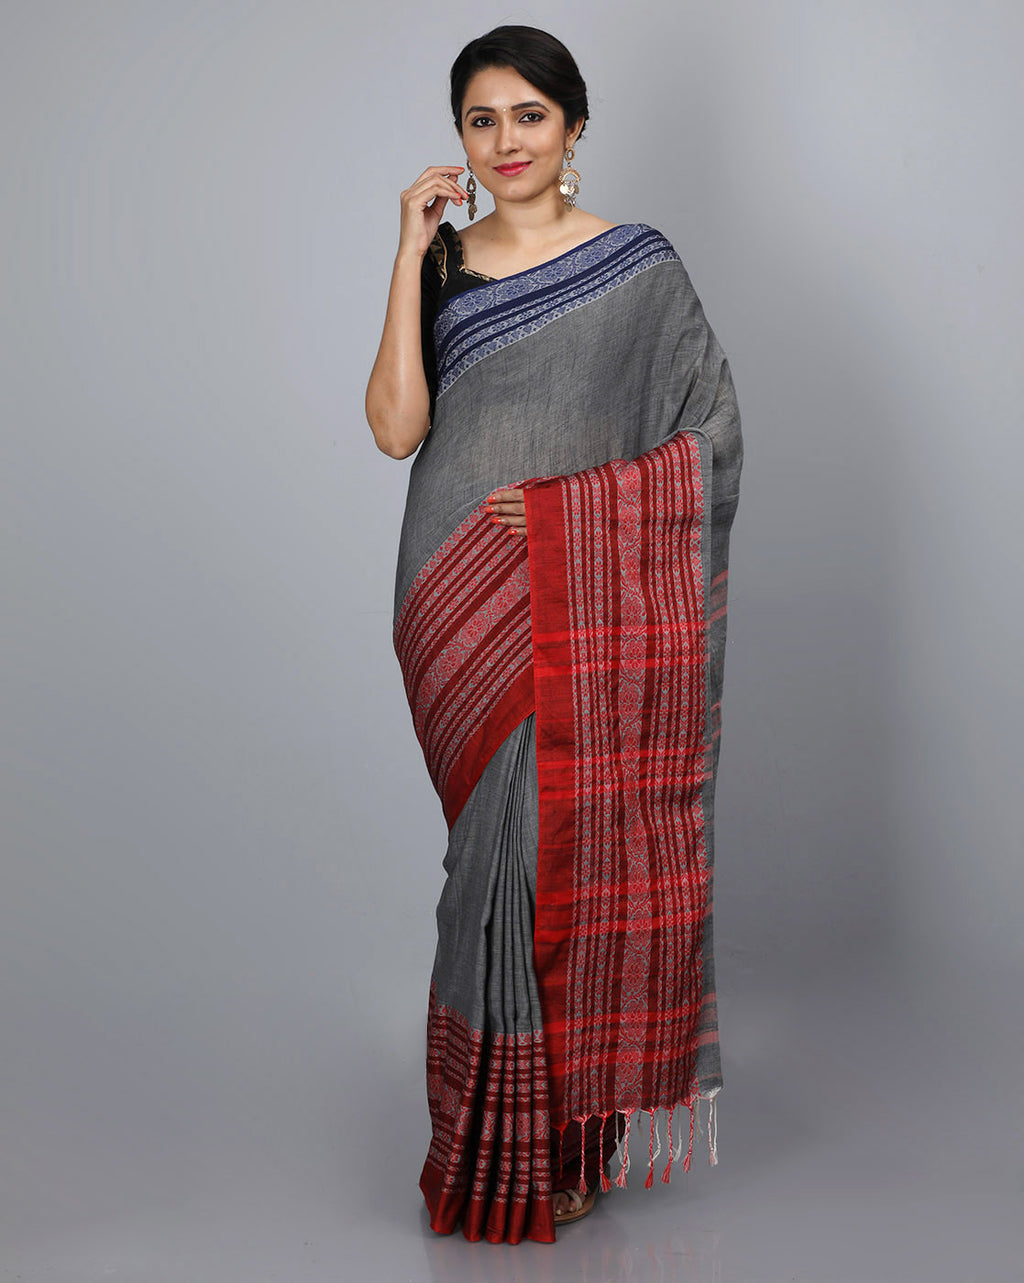 Phulia Cotton Saree with Thick and Thin Floral Border - Charcoal Grey/Red & Blue